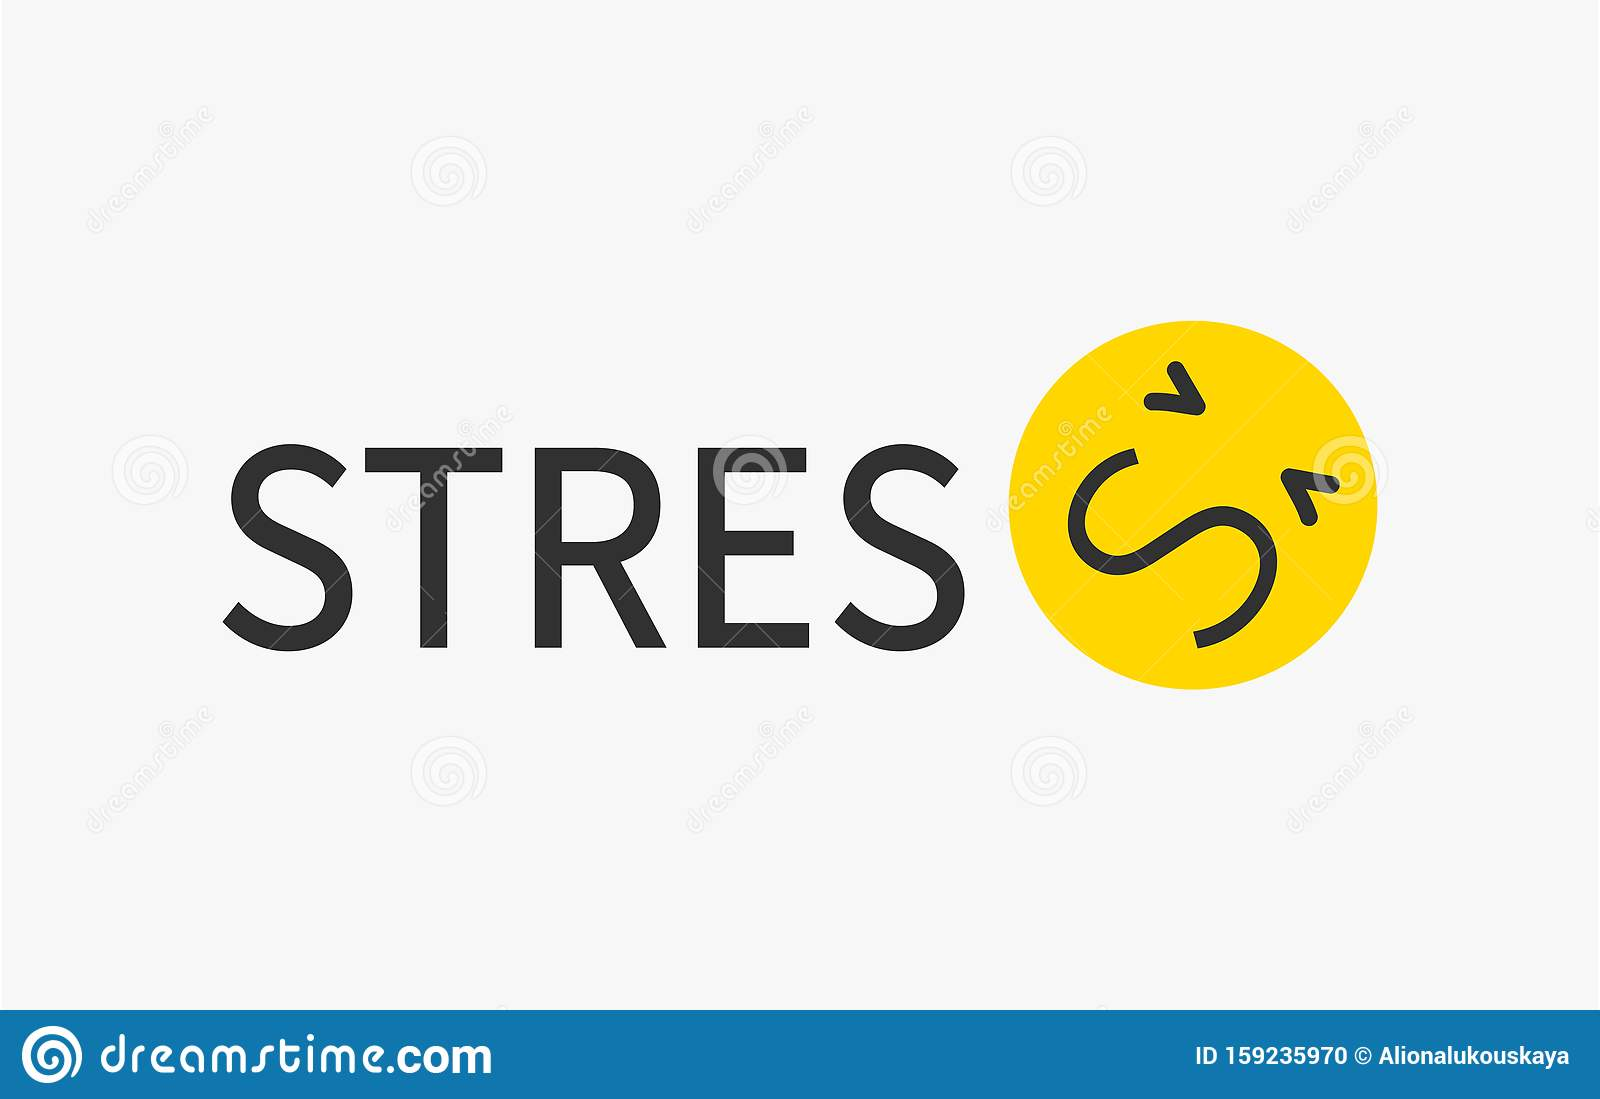 Desperate Emoji Stock Illustrations 537 Desperate Emoji Stock Illustrations Vectors Clipart Dreamstime Discord & slack emoji directory, easily browse and use thousands of custom emojis for your discord server or slack browse emoji categories such as thinking, anime, meme, pepe, blobs and more. https www dreamstime com word stress negative mood yellow emoji banner word stress negative mood yellow emoji banner sad unhappy depression emotion image159235970